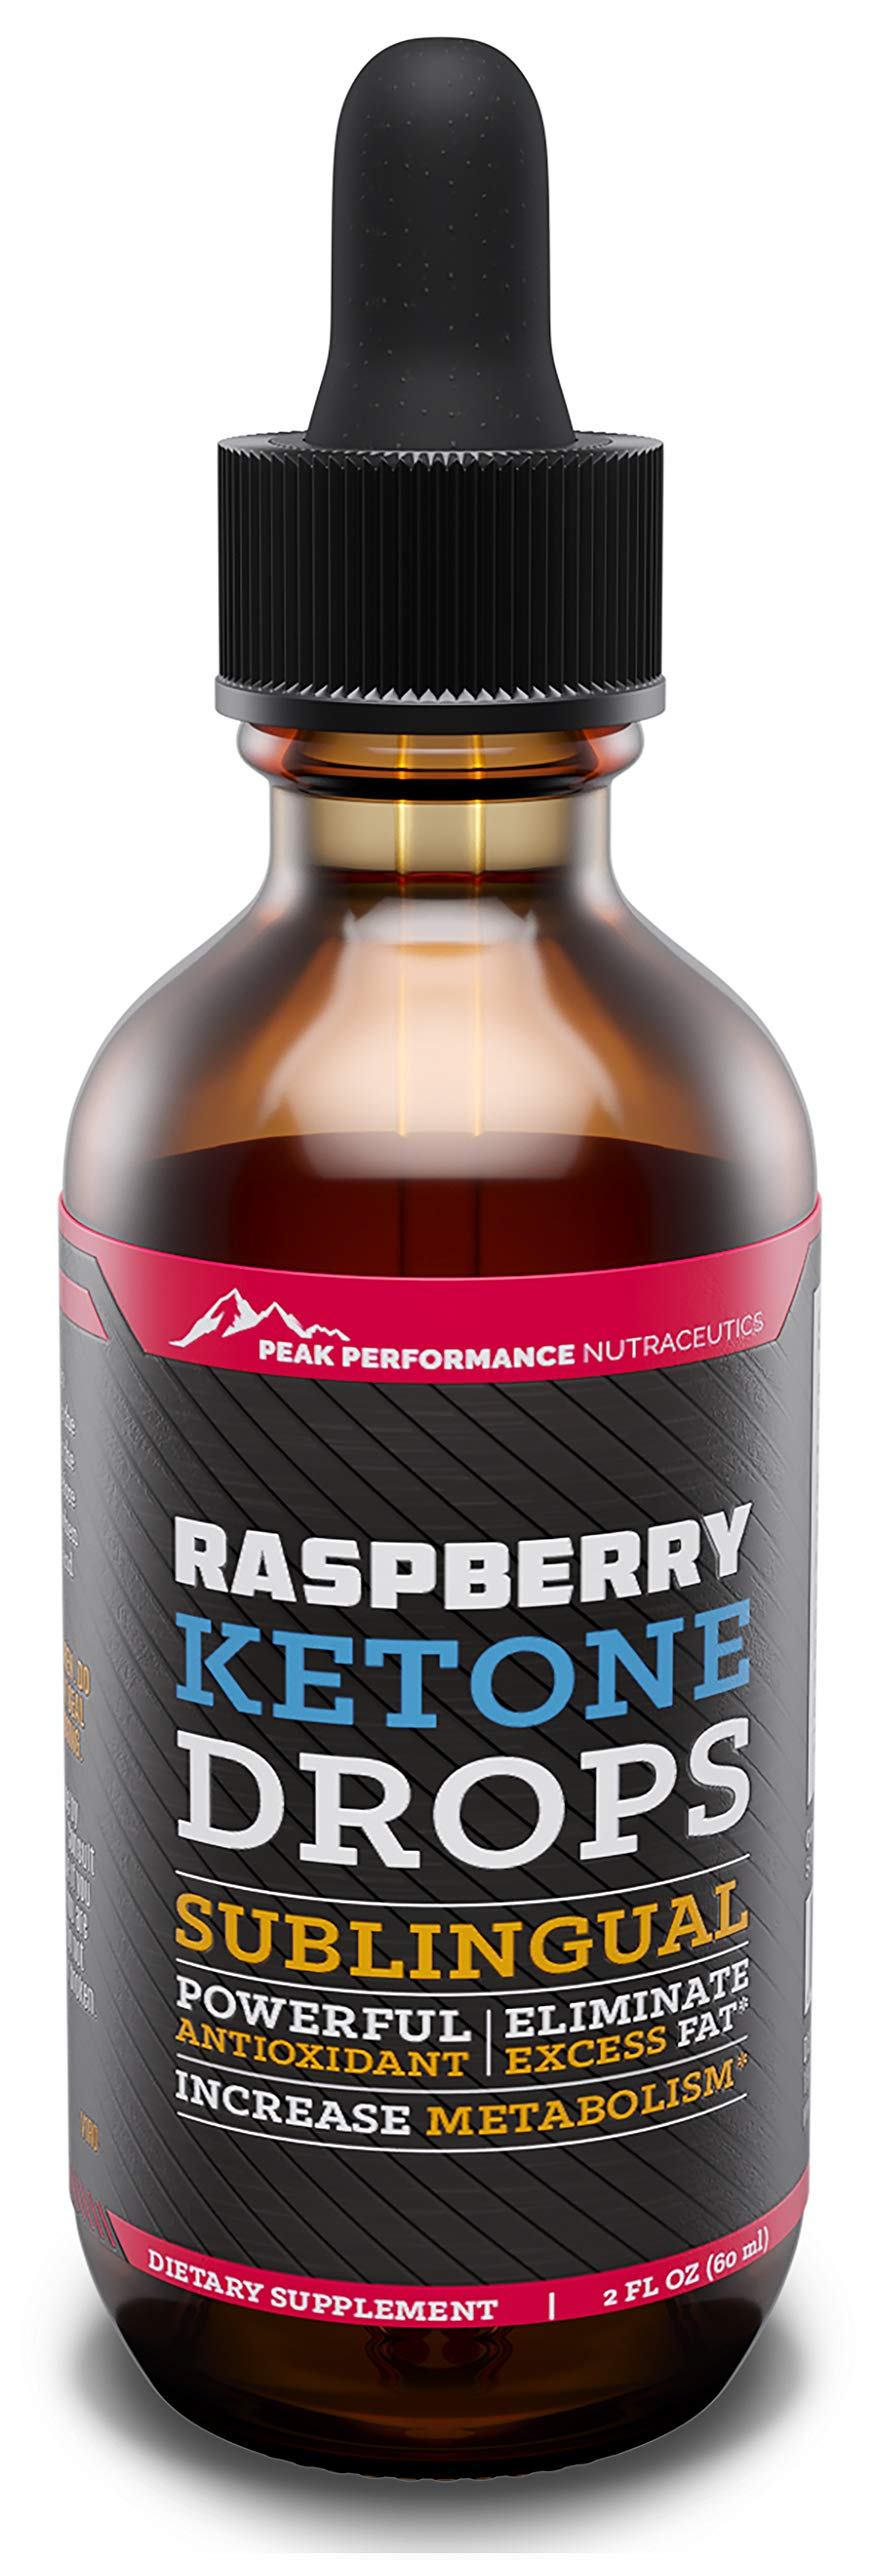 Raspberry Ketones Liquid Extract Supplement. Appetite Suppressant Drops for Fast Weight Loss, Cleanse and Detox. Powerful Ketone Antioxidant. Energy, Metabolism and Immune System Booster. 2 Ounces by Peak Performance Nutraceutics